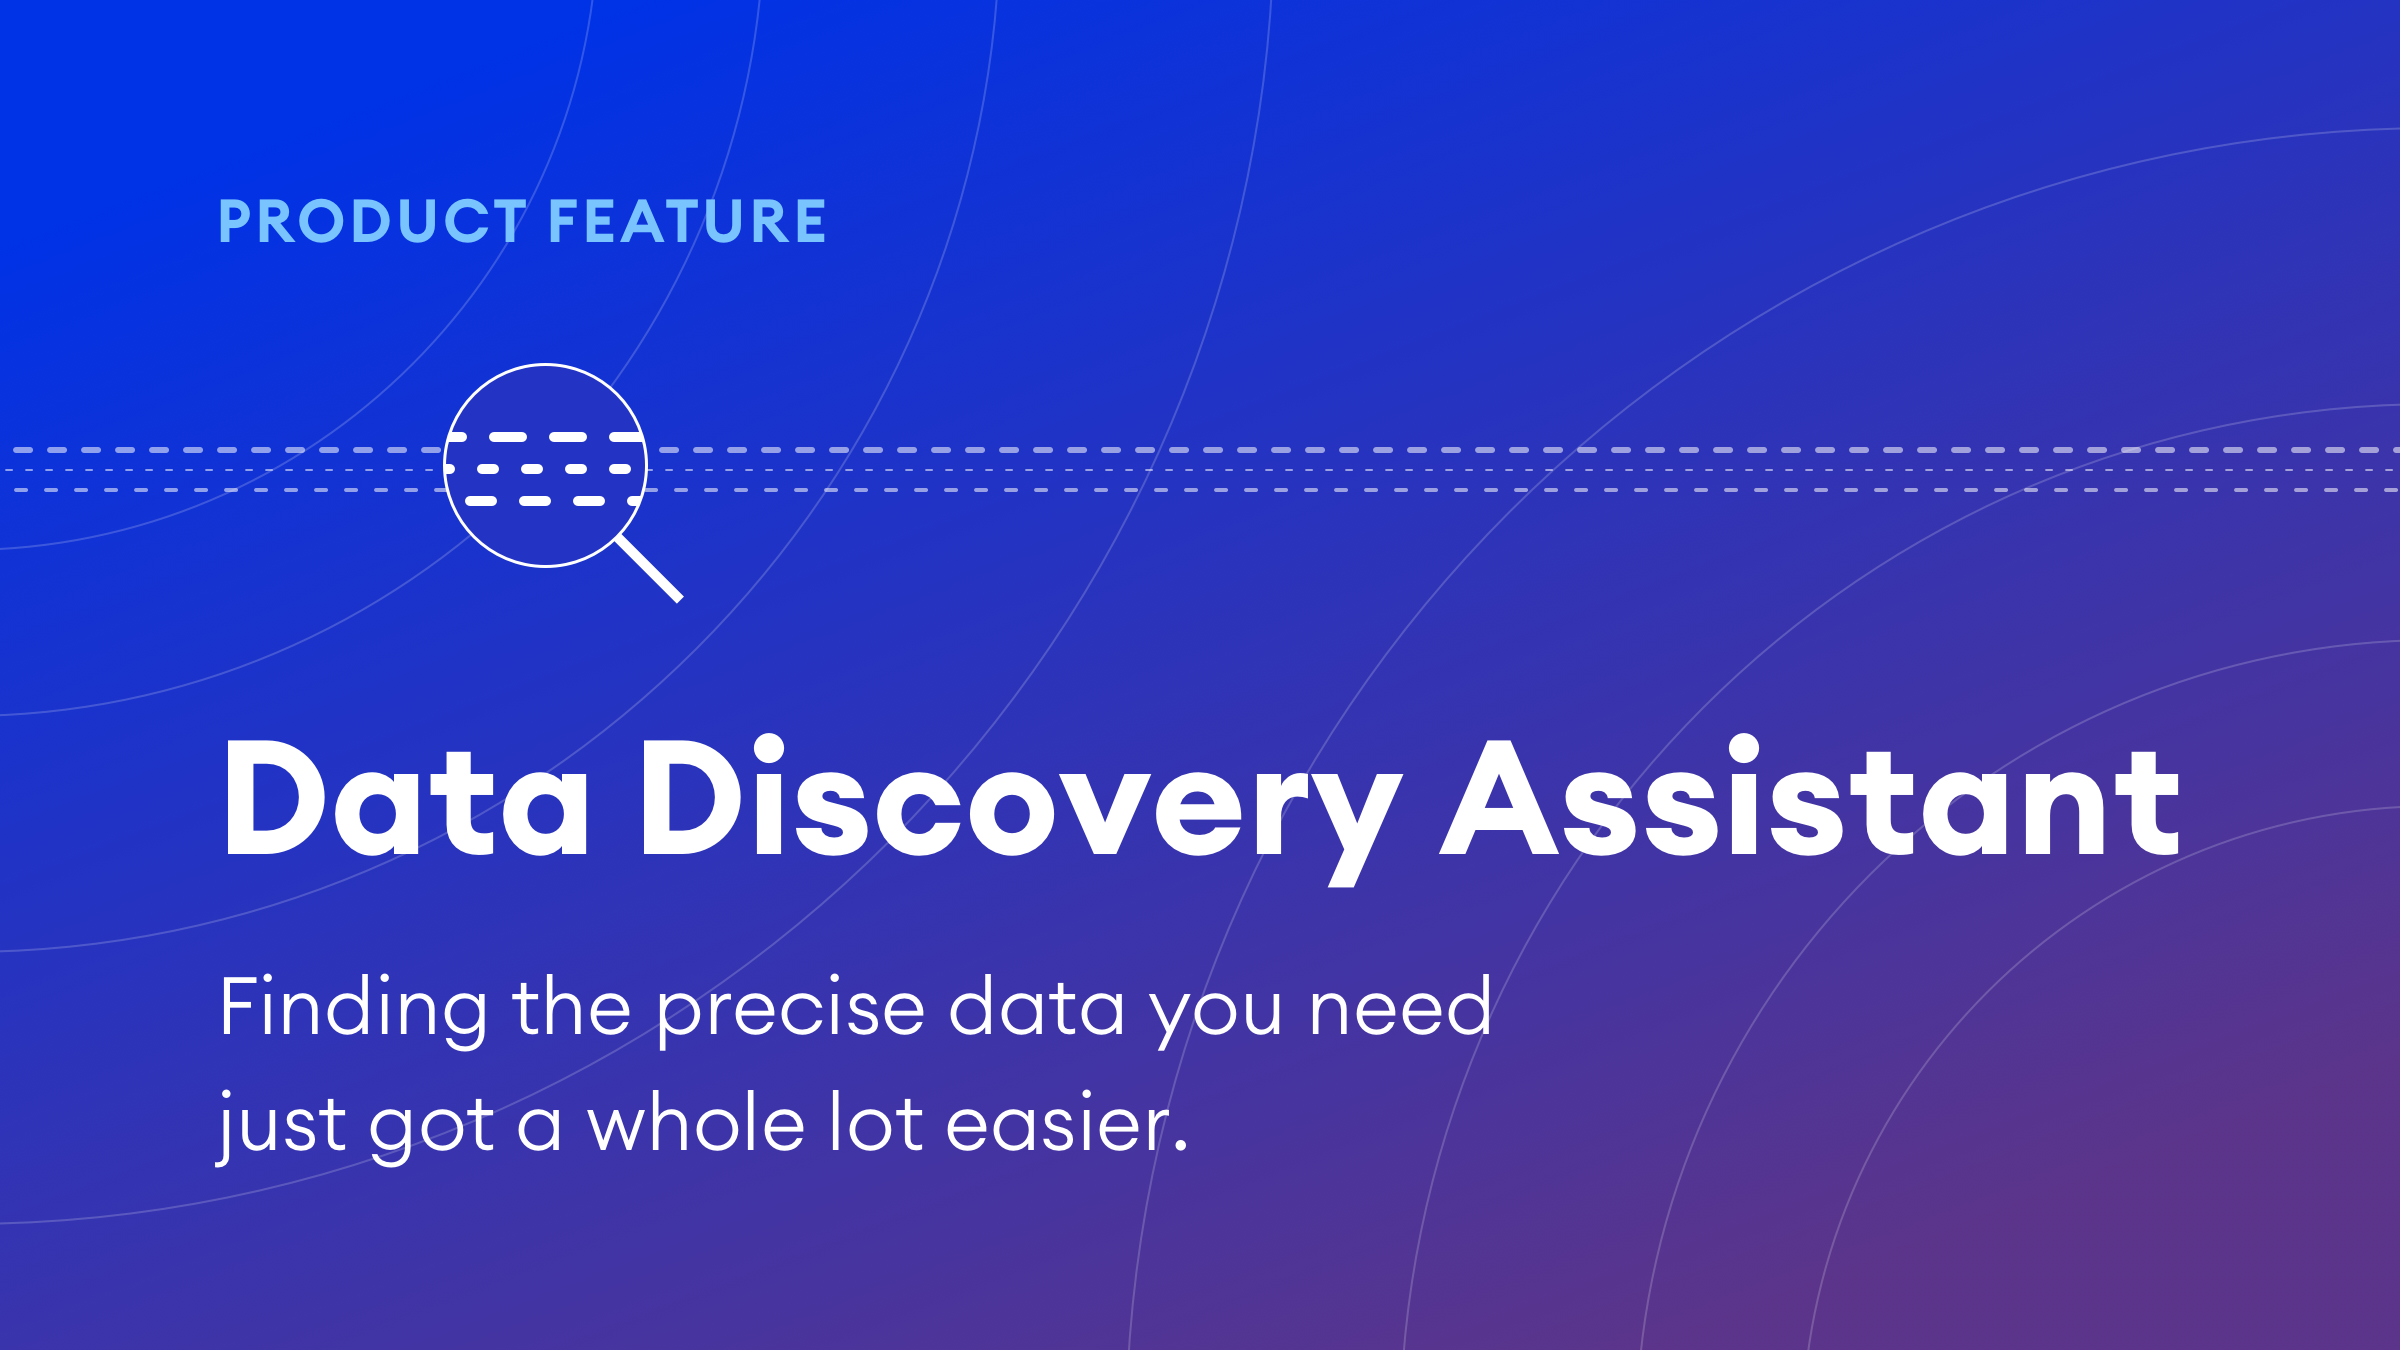 Uncover new attributes of interest with Data Discovery Assistant